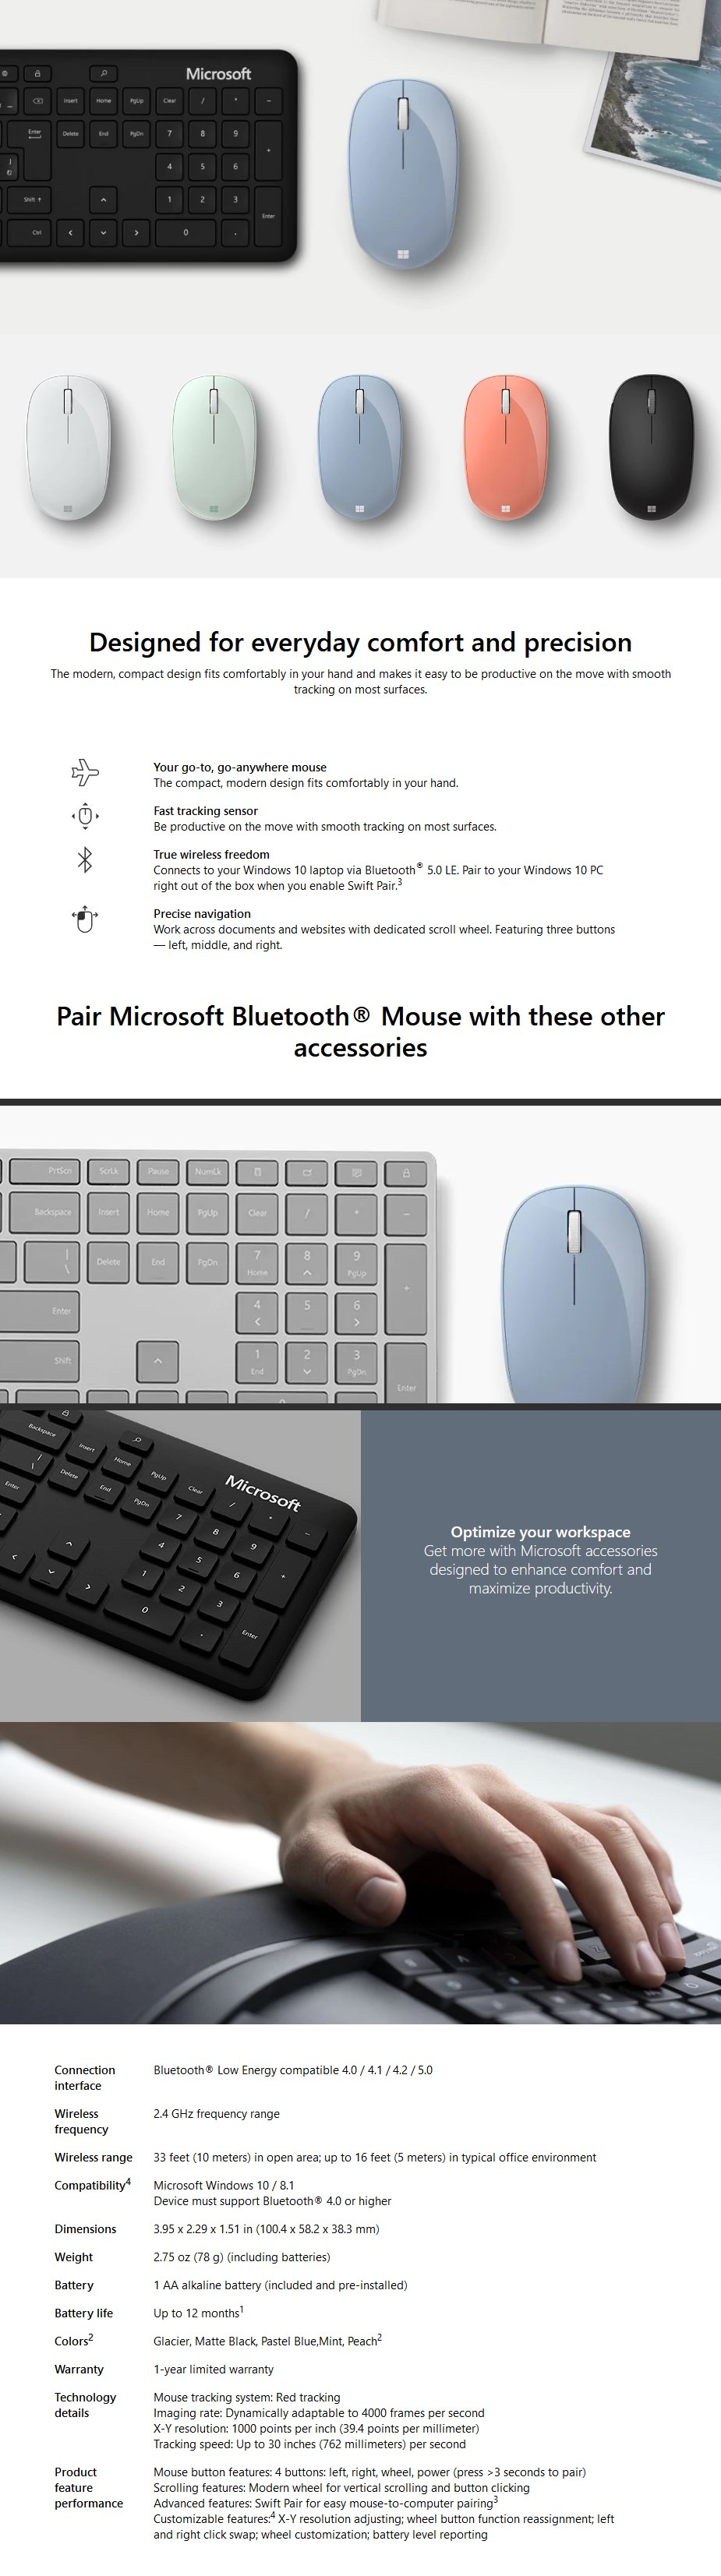 Microsoft Compact Bluetooth Mouse - Overview 1